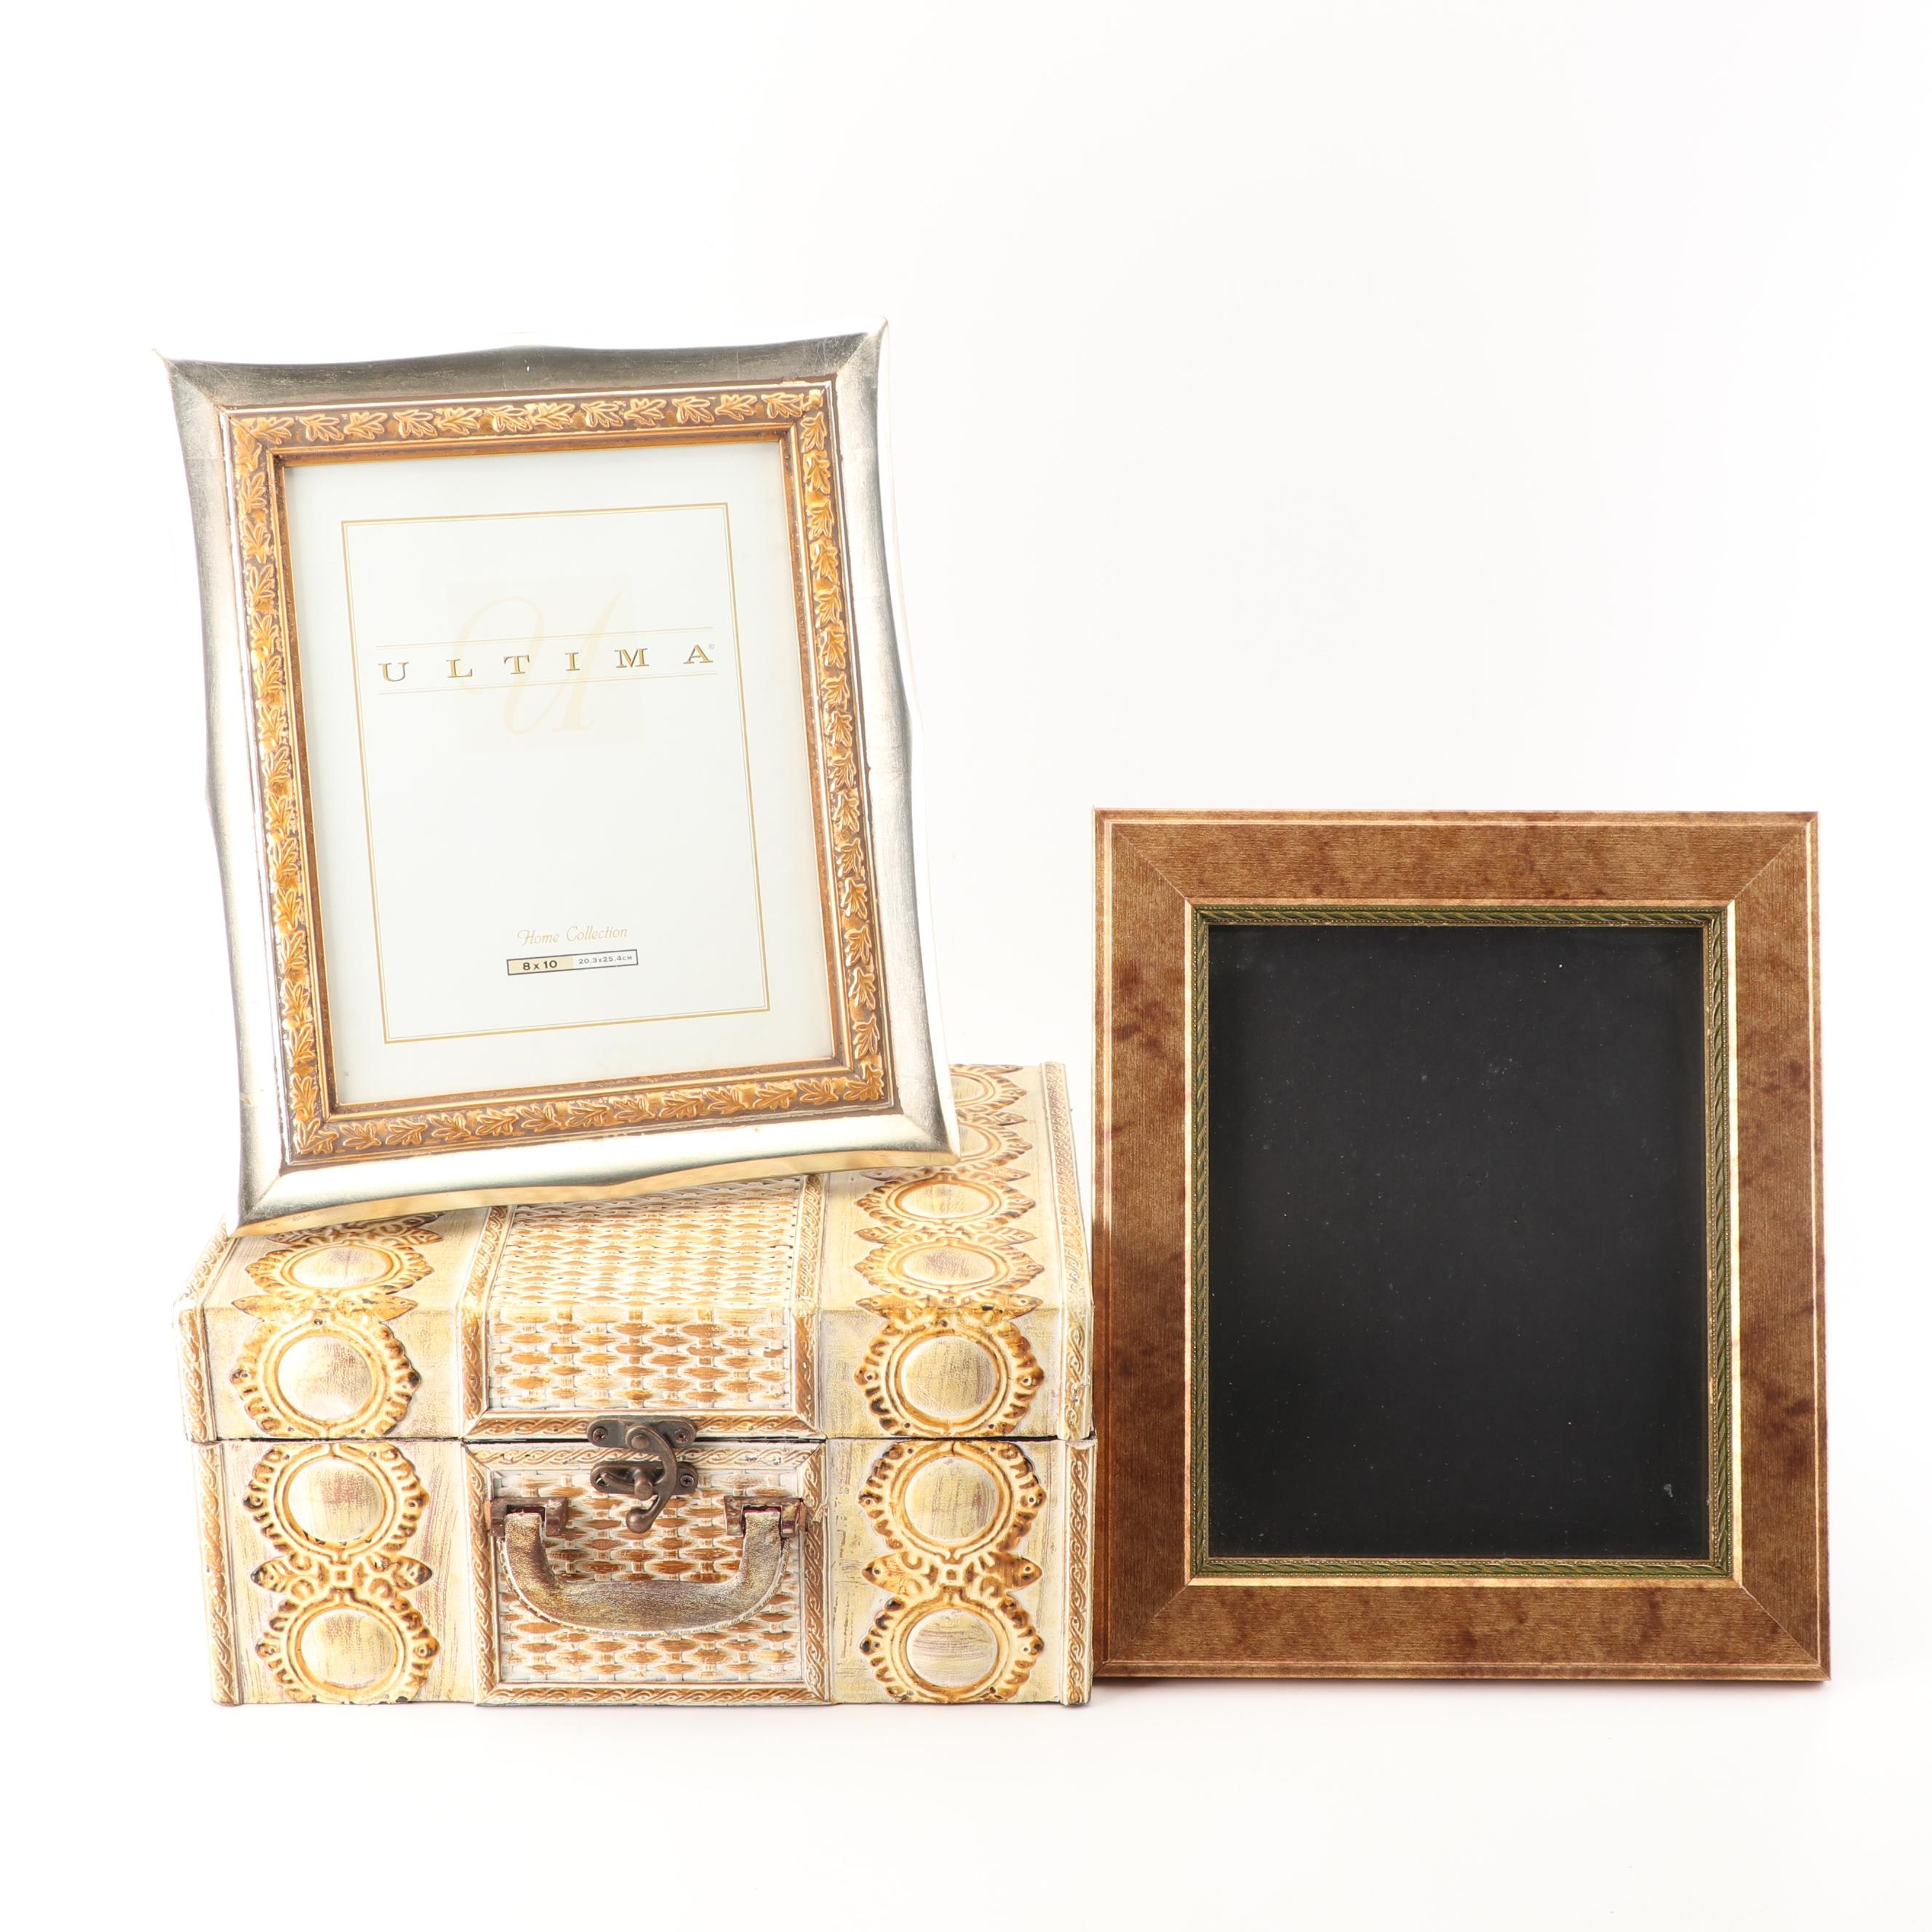 Decorative Box With Table Top Picture Frames Including Burnes Of